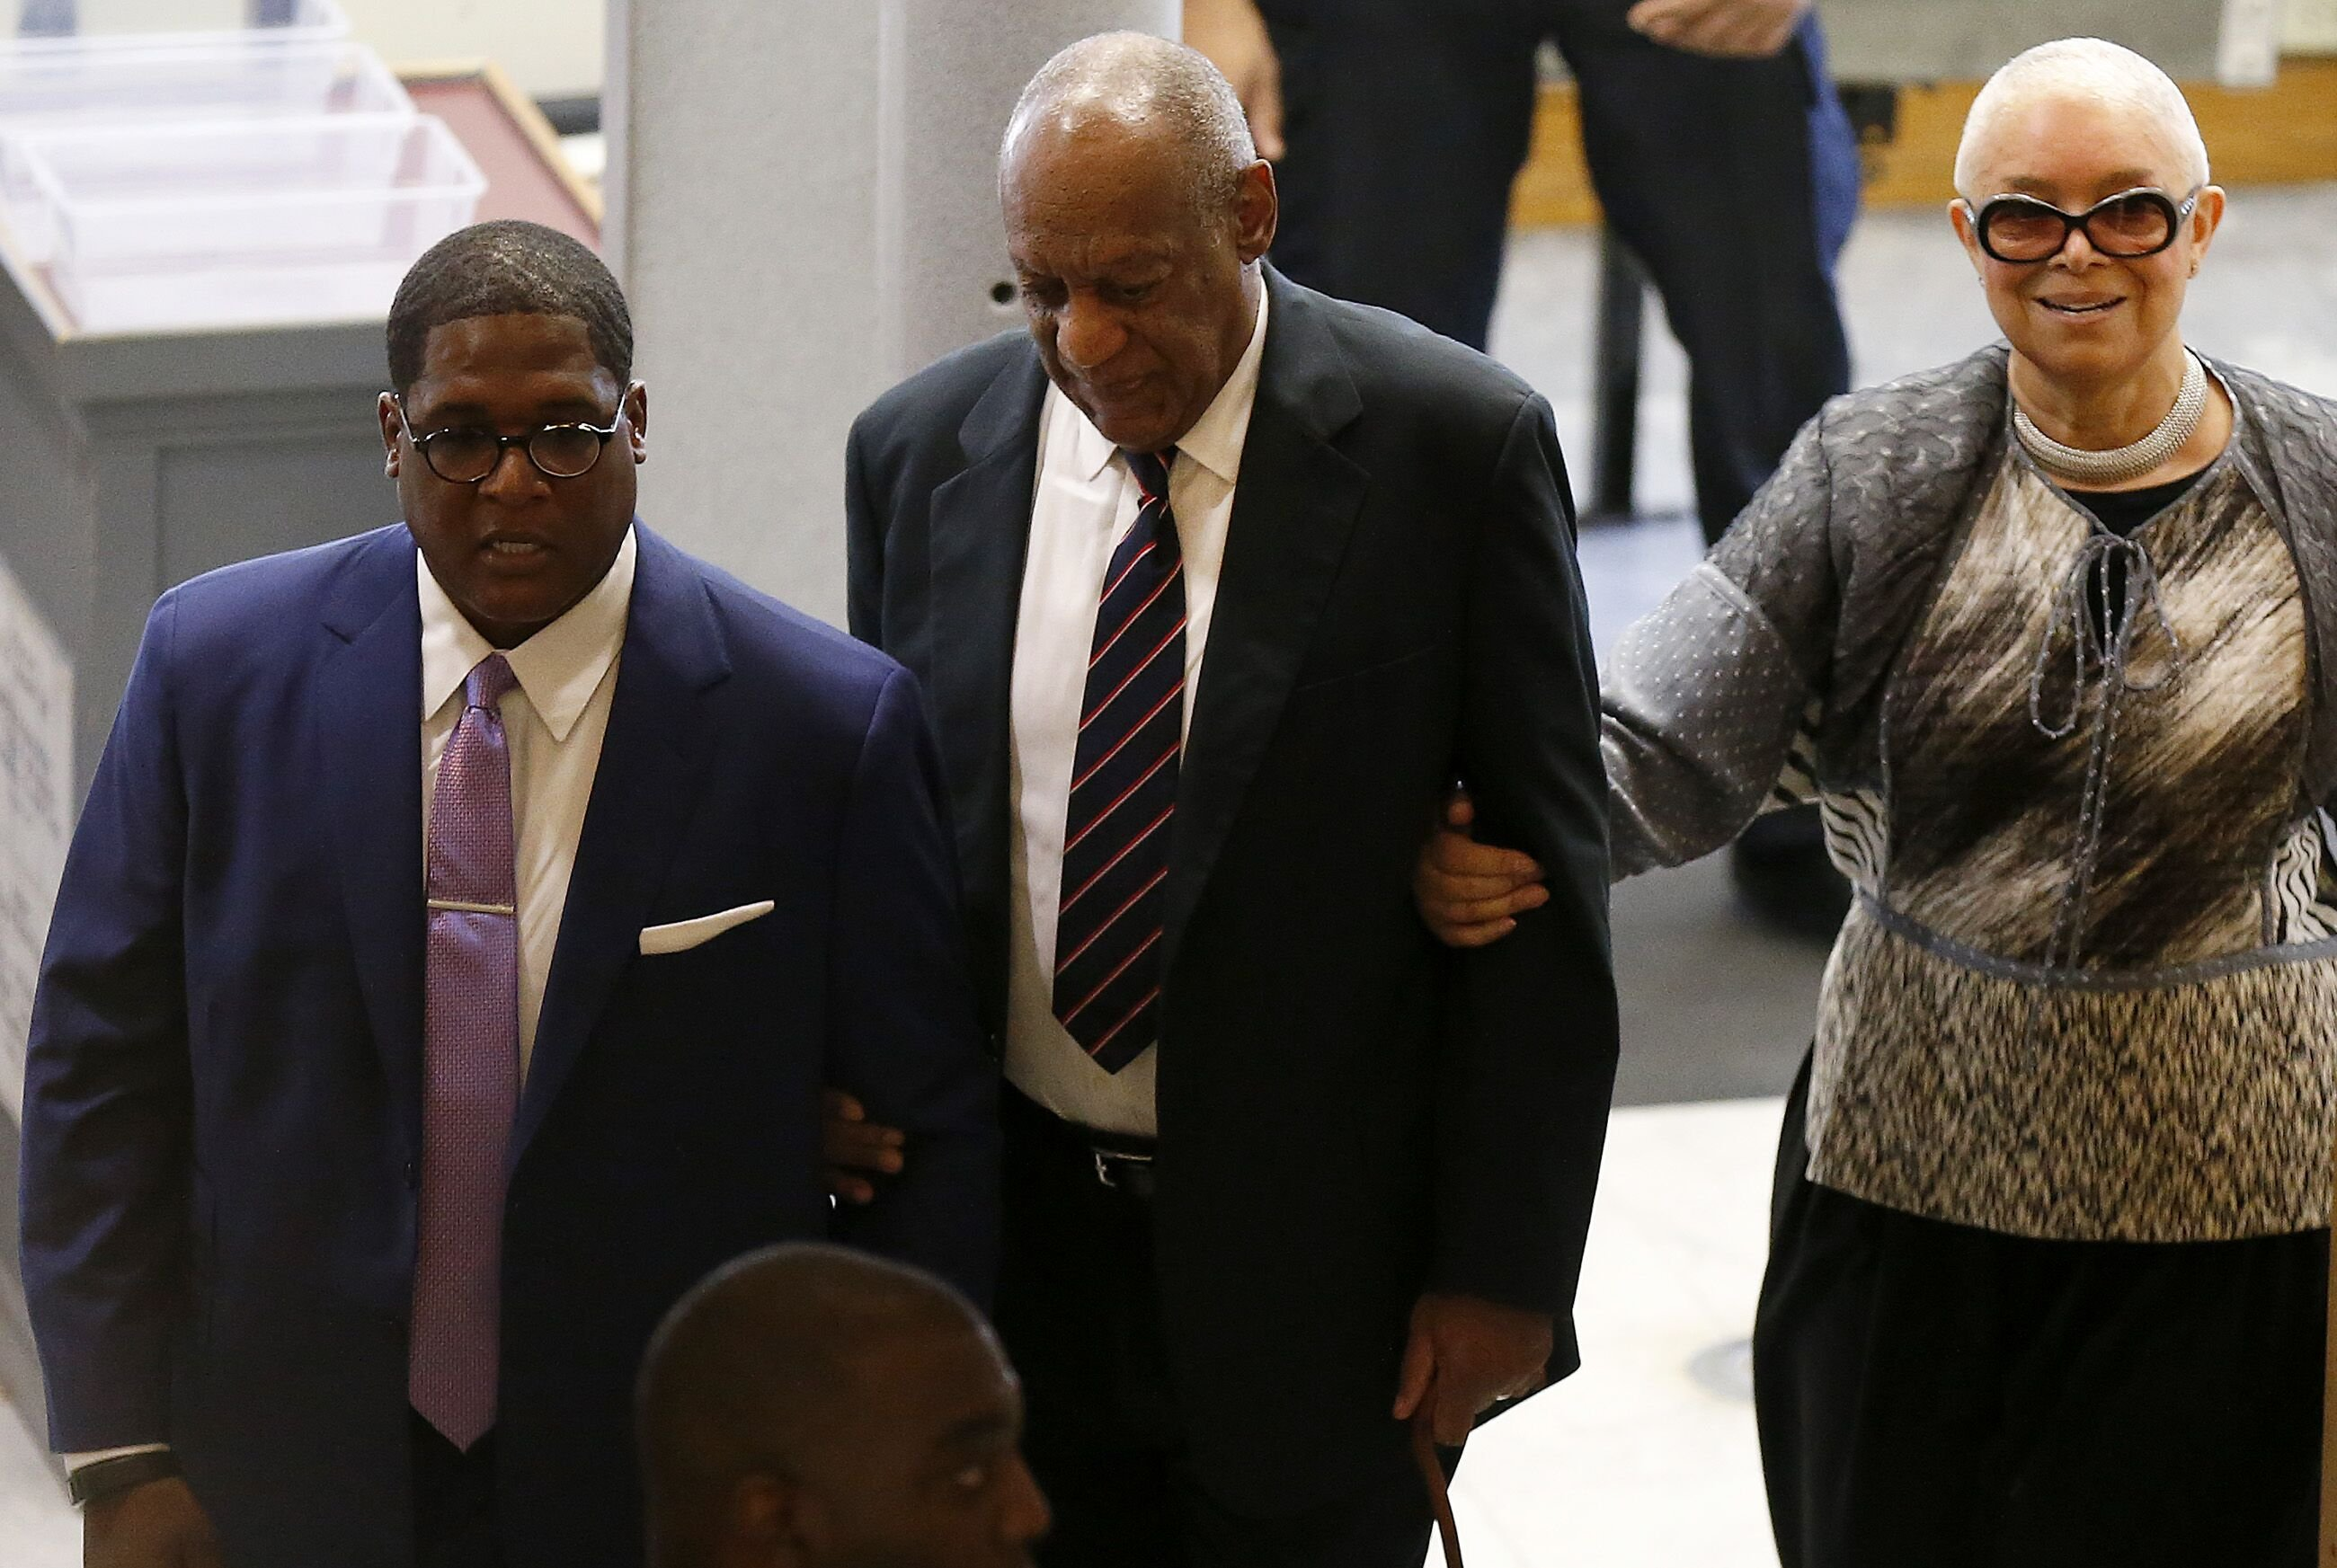 Bill and Camille Cosby enter the Montgomery County Courthouse on June 12, 2017  | Source: Getty Images